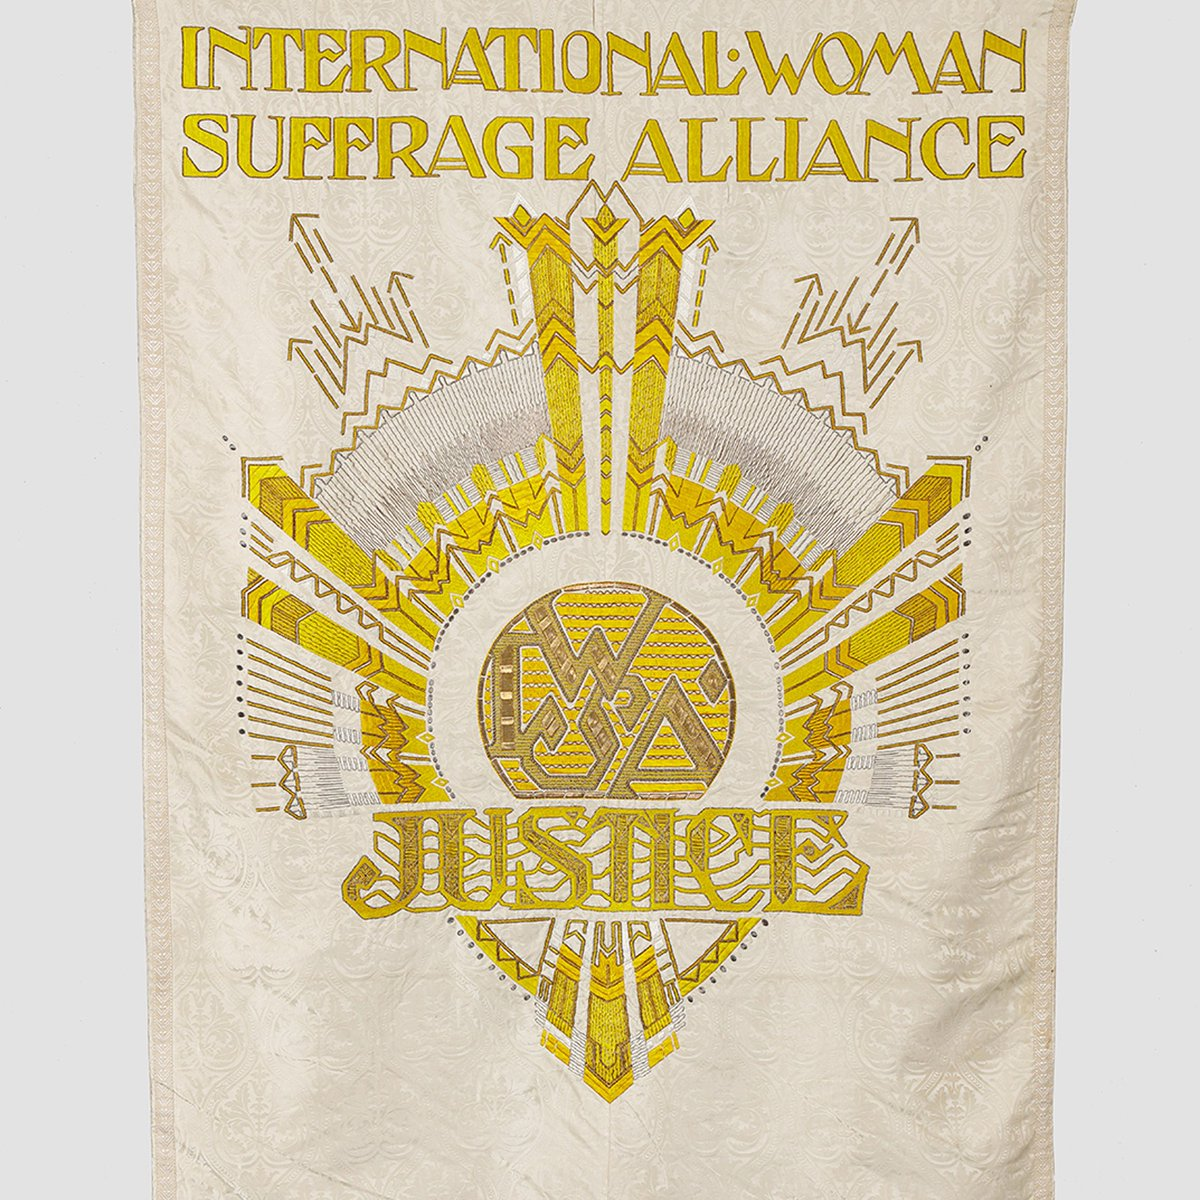 Struggle! 100 Years of Womens Suffrage. Five of the most interesting items in the exhibition – dezeen.com/2019/05/17/wom… (via @dezeen)